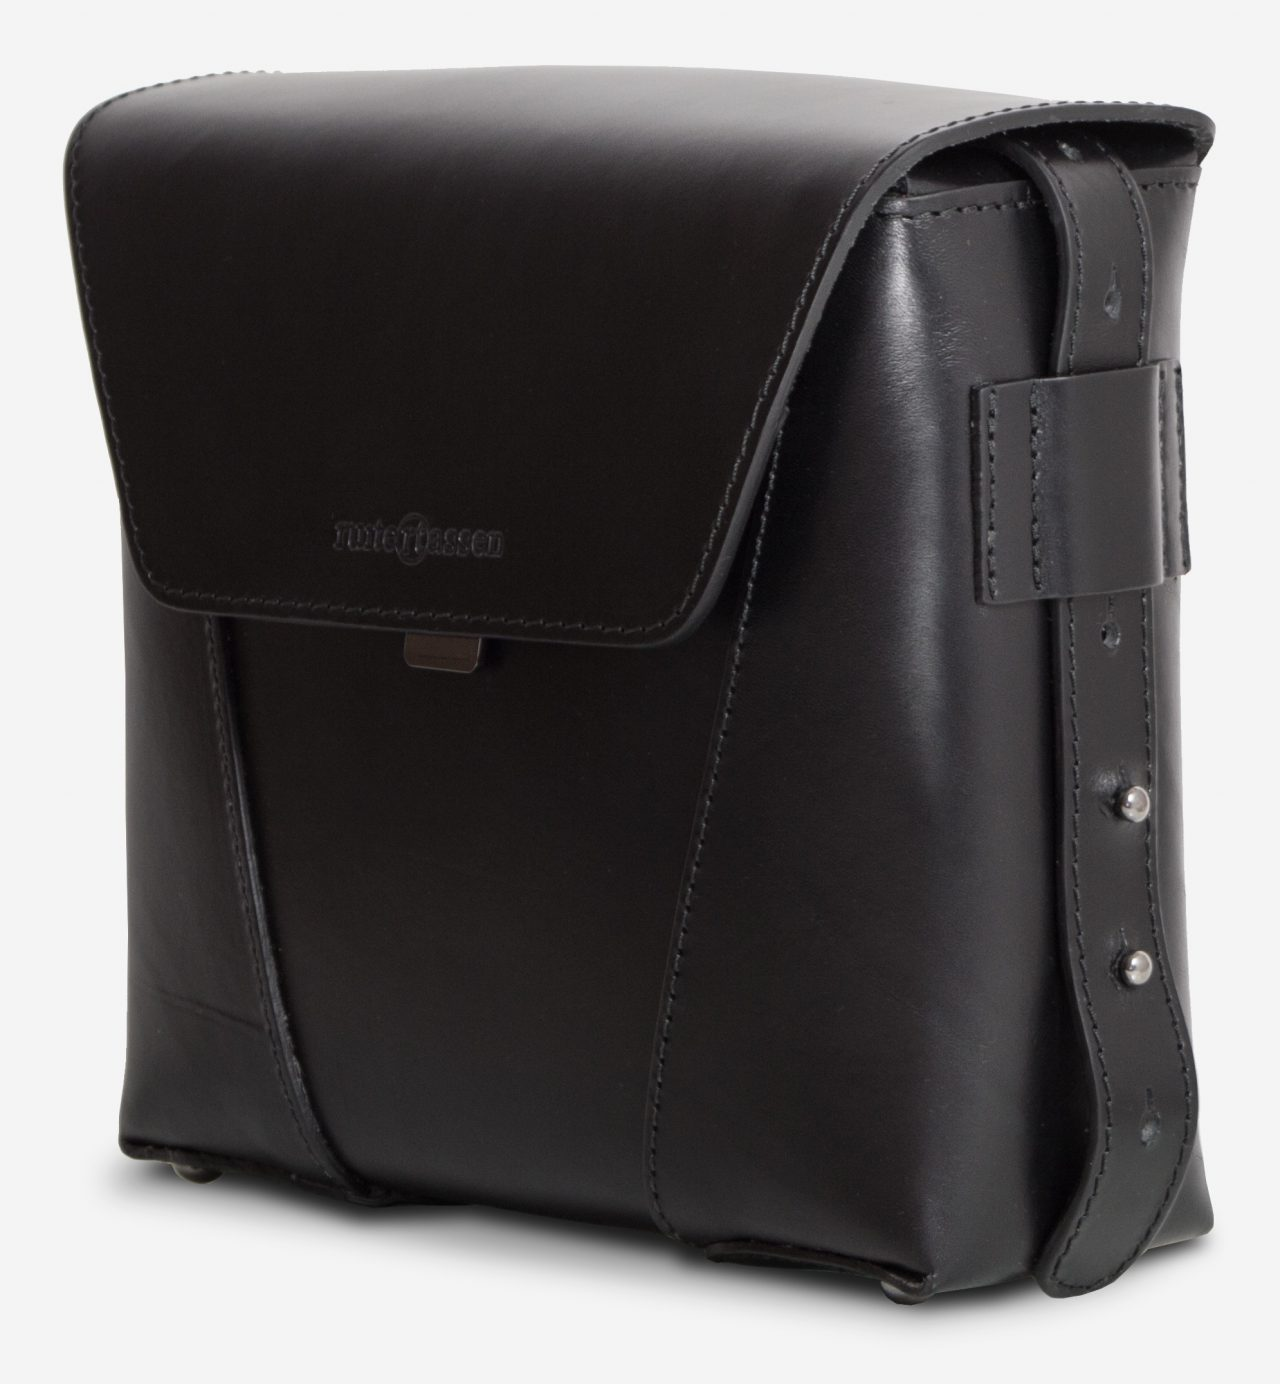 Side view of the small black vegetable-tanned leather crossbody bag.